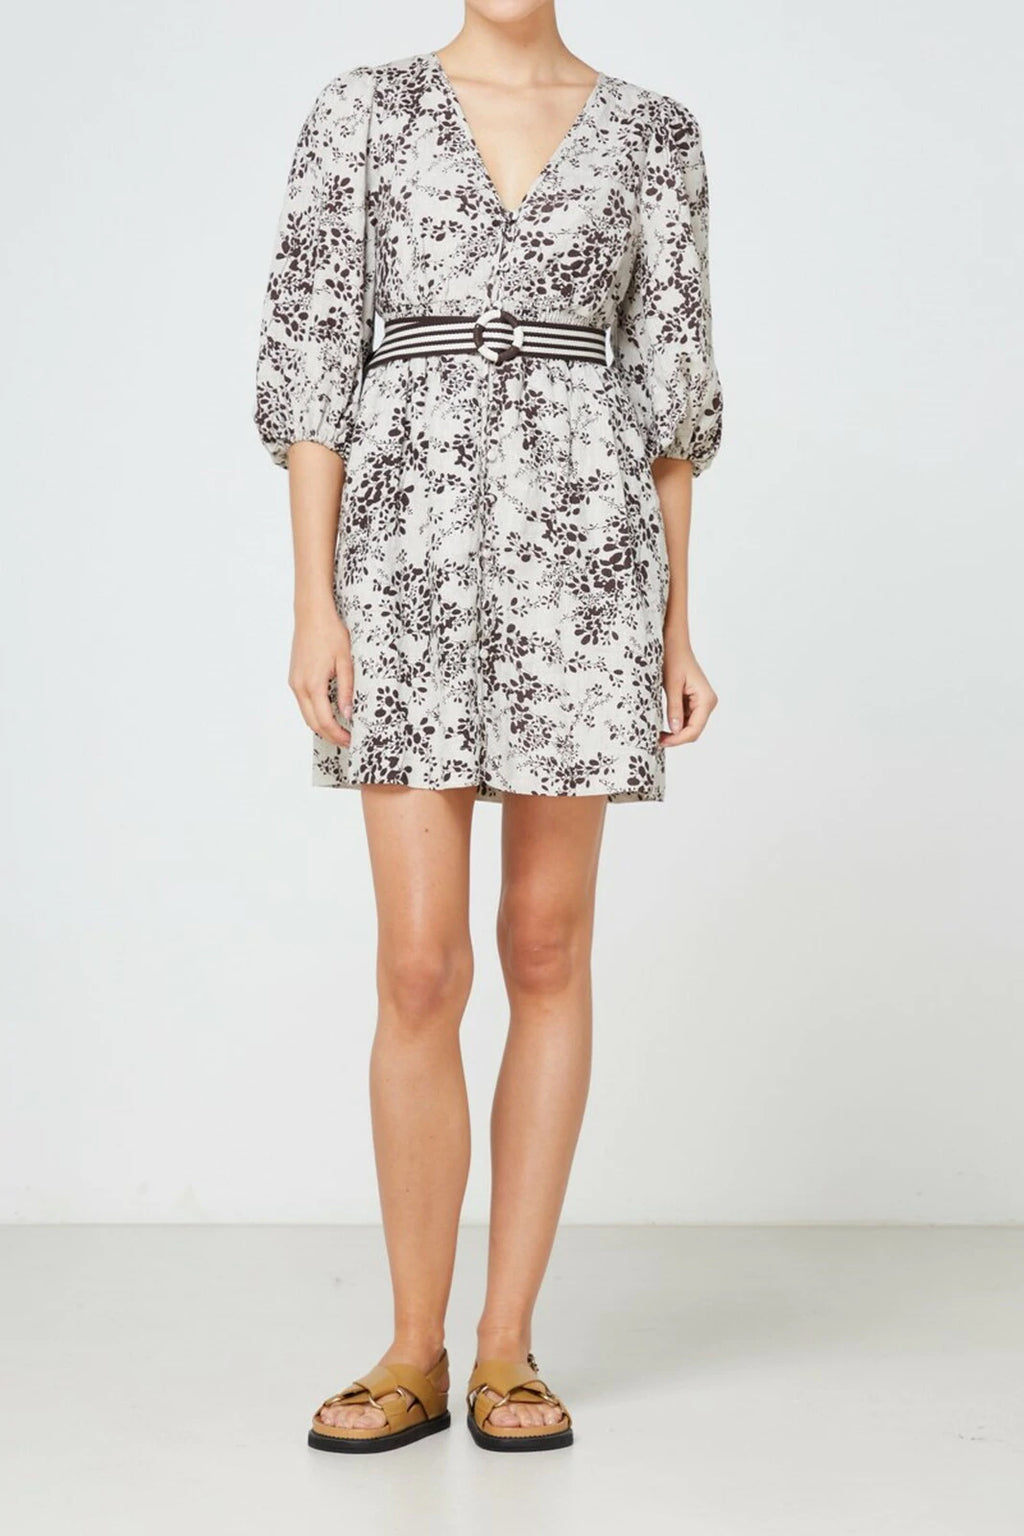 Elka Belmond Dress in Cocoa Print